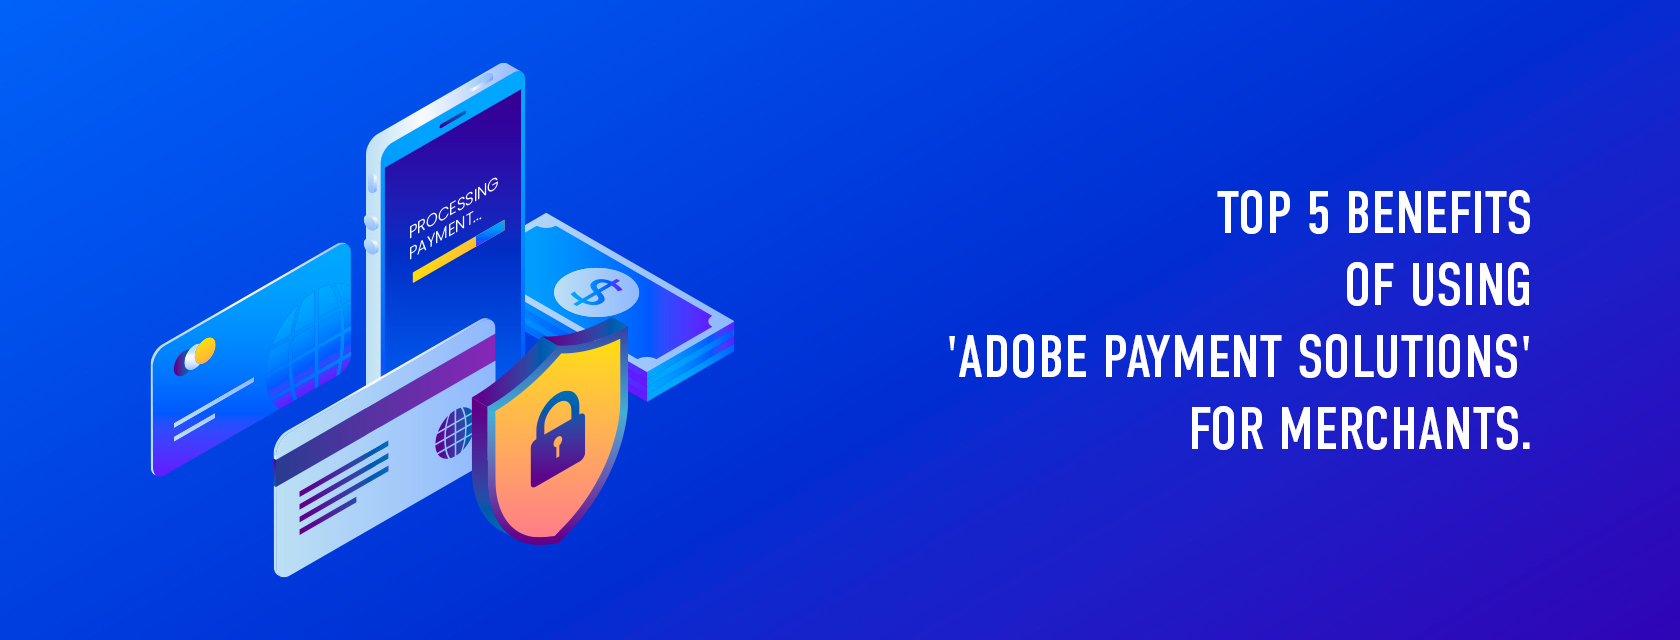 Adobe Payment Services – Top 5 benefits every eCom business should know